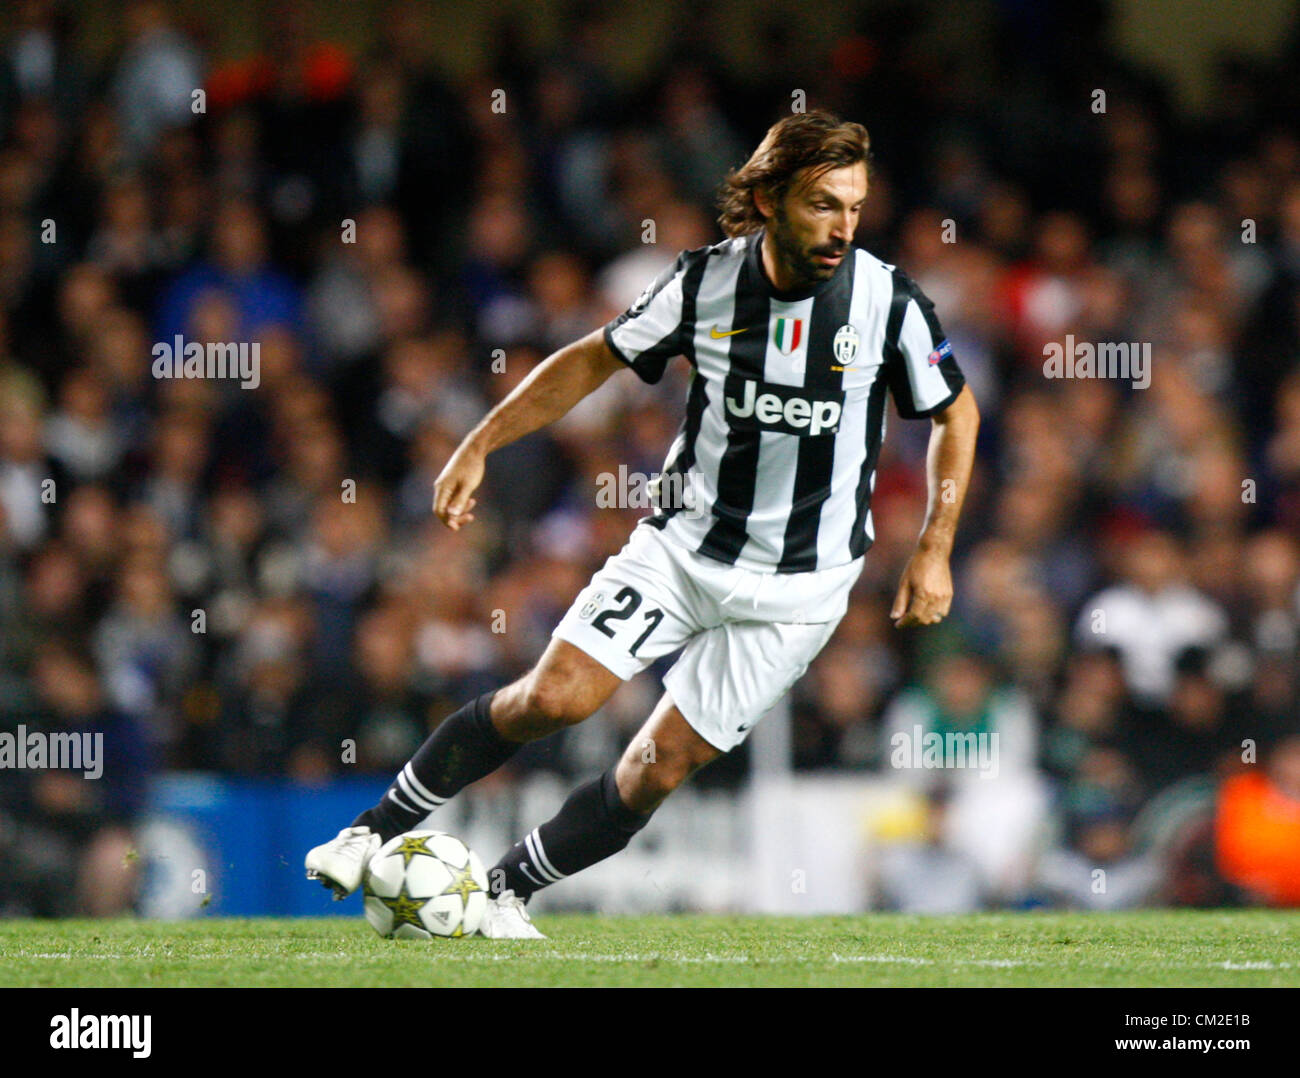 19 09 12 London England Andrea Pirlo Of Juventus F C During The Stock Photo Alamy